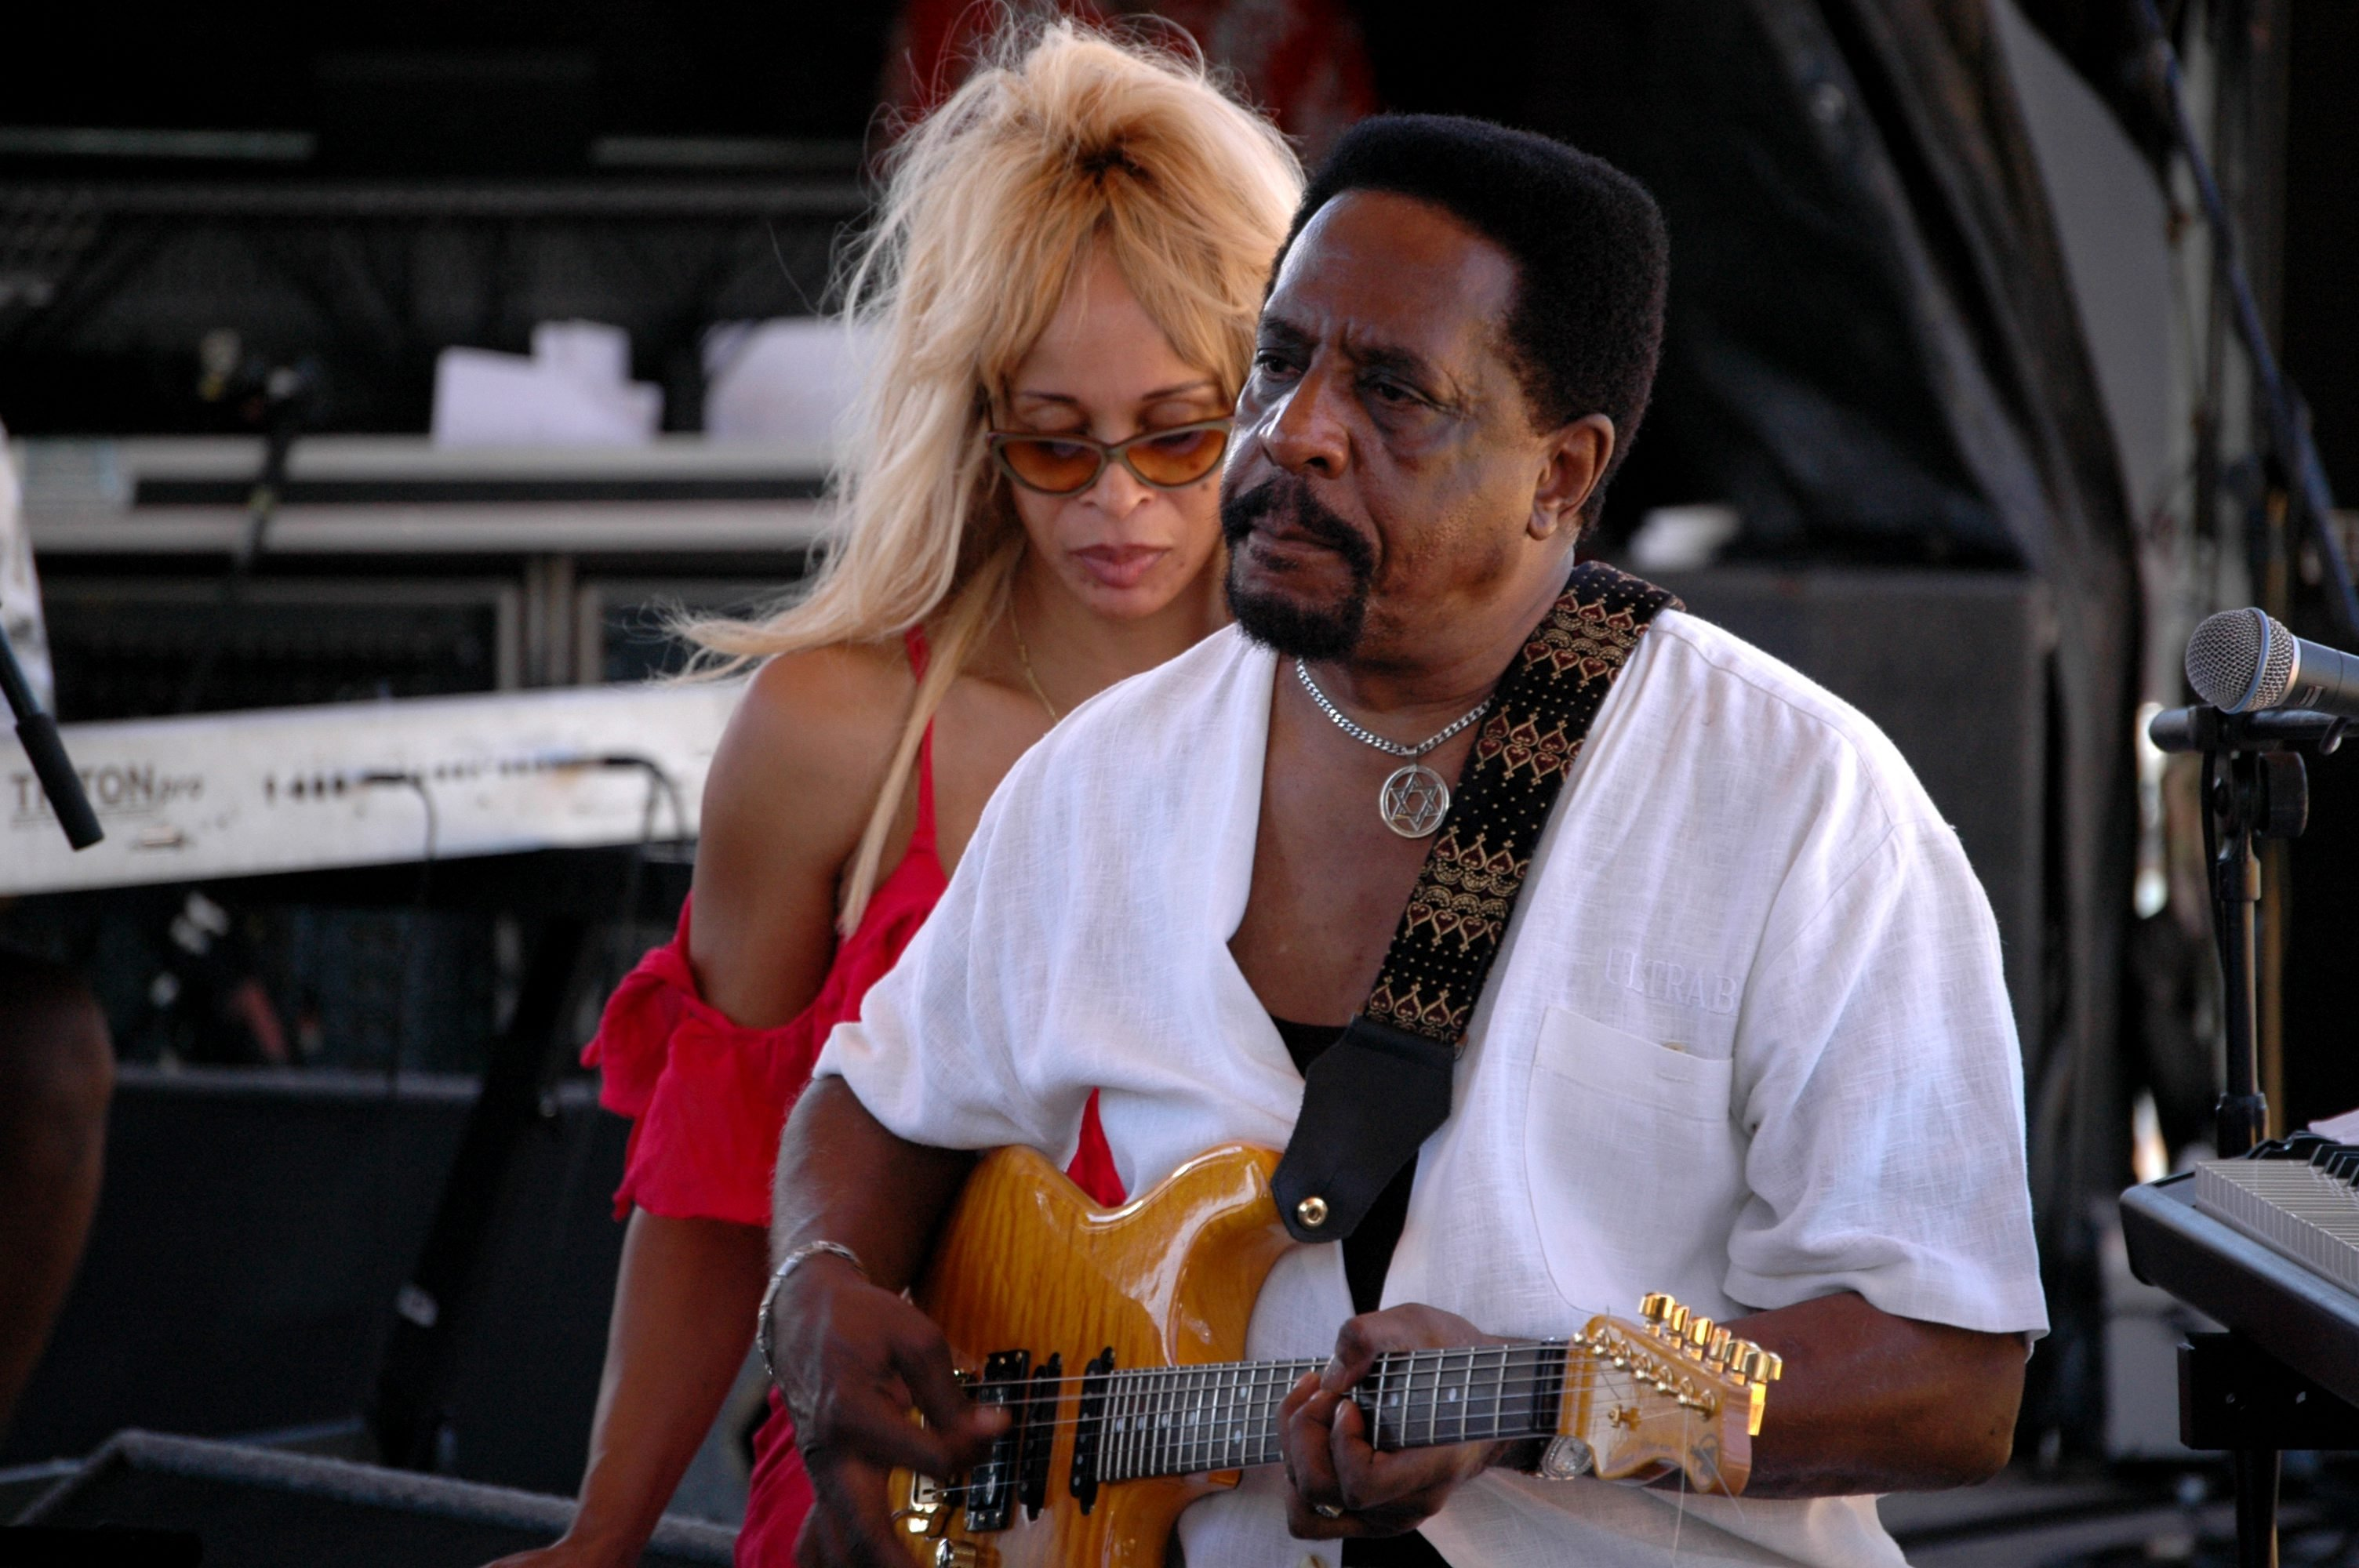 Ike Turner and Audrey Madison perform on stage at Koh Samui Festival, Thailand, September 2005. | Photo: GettyImages